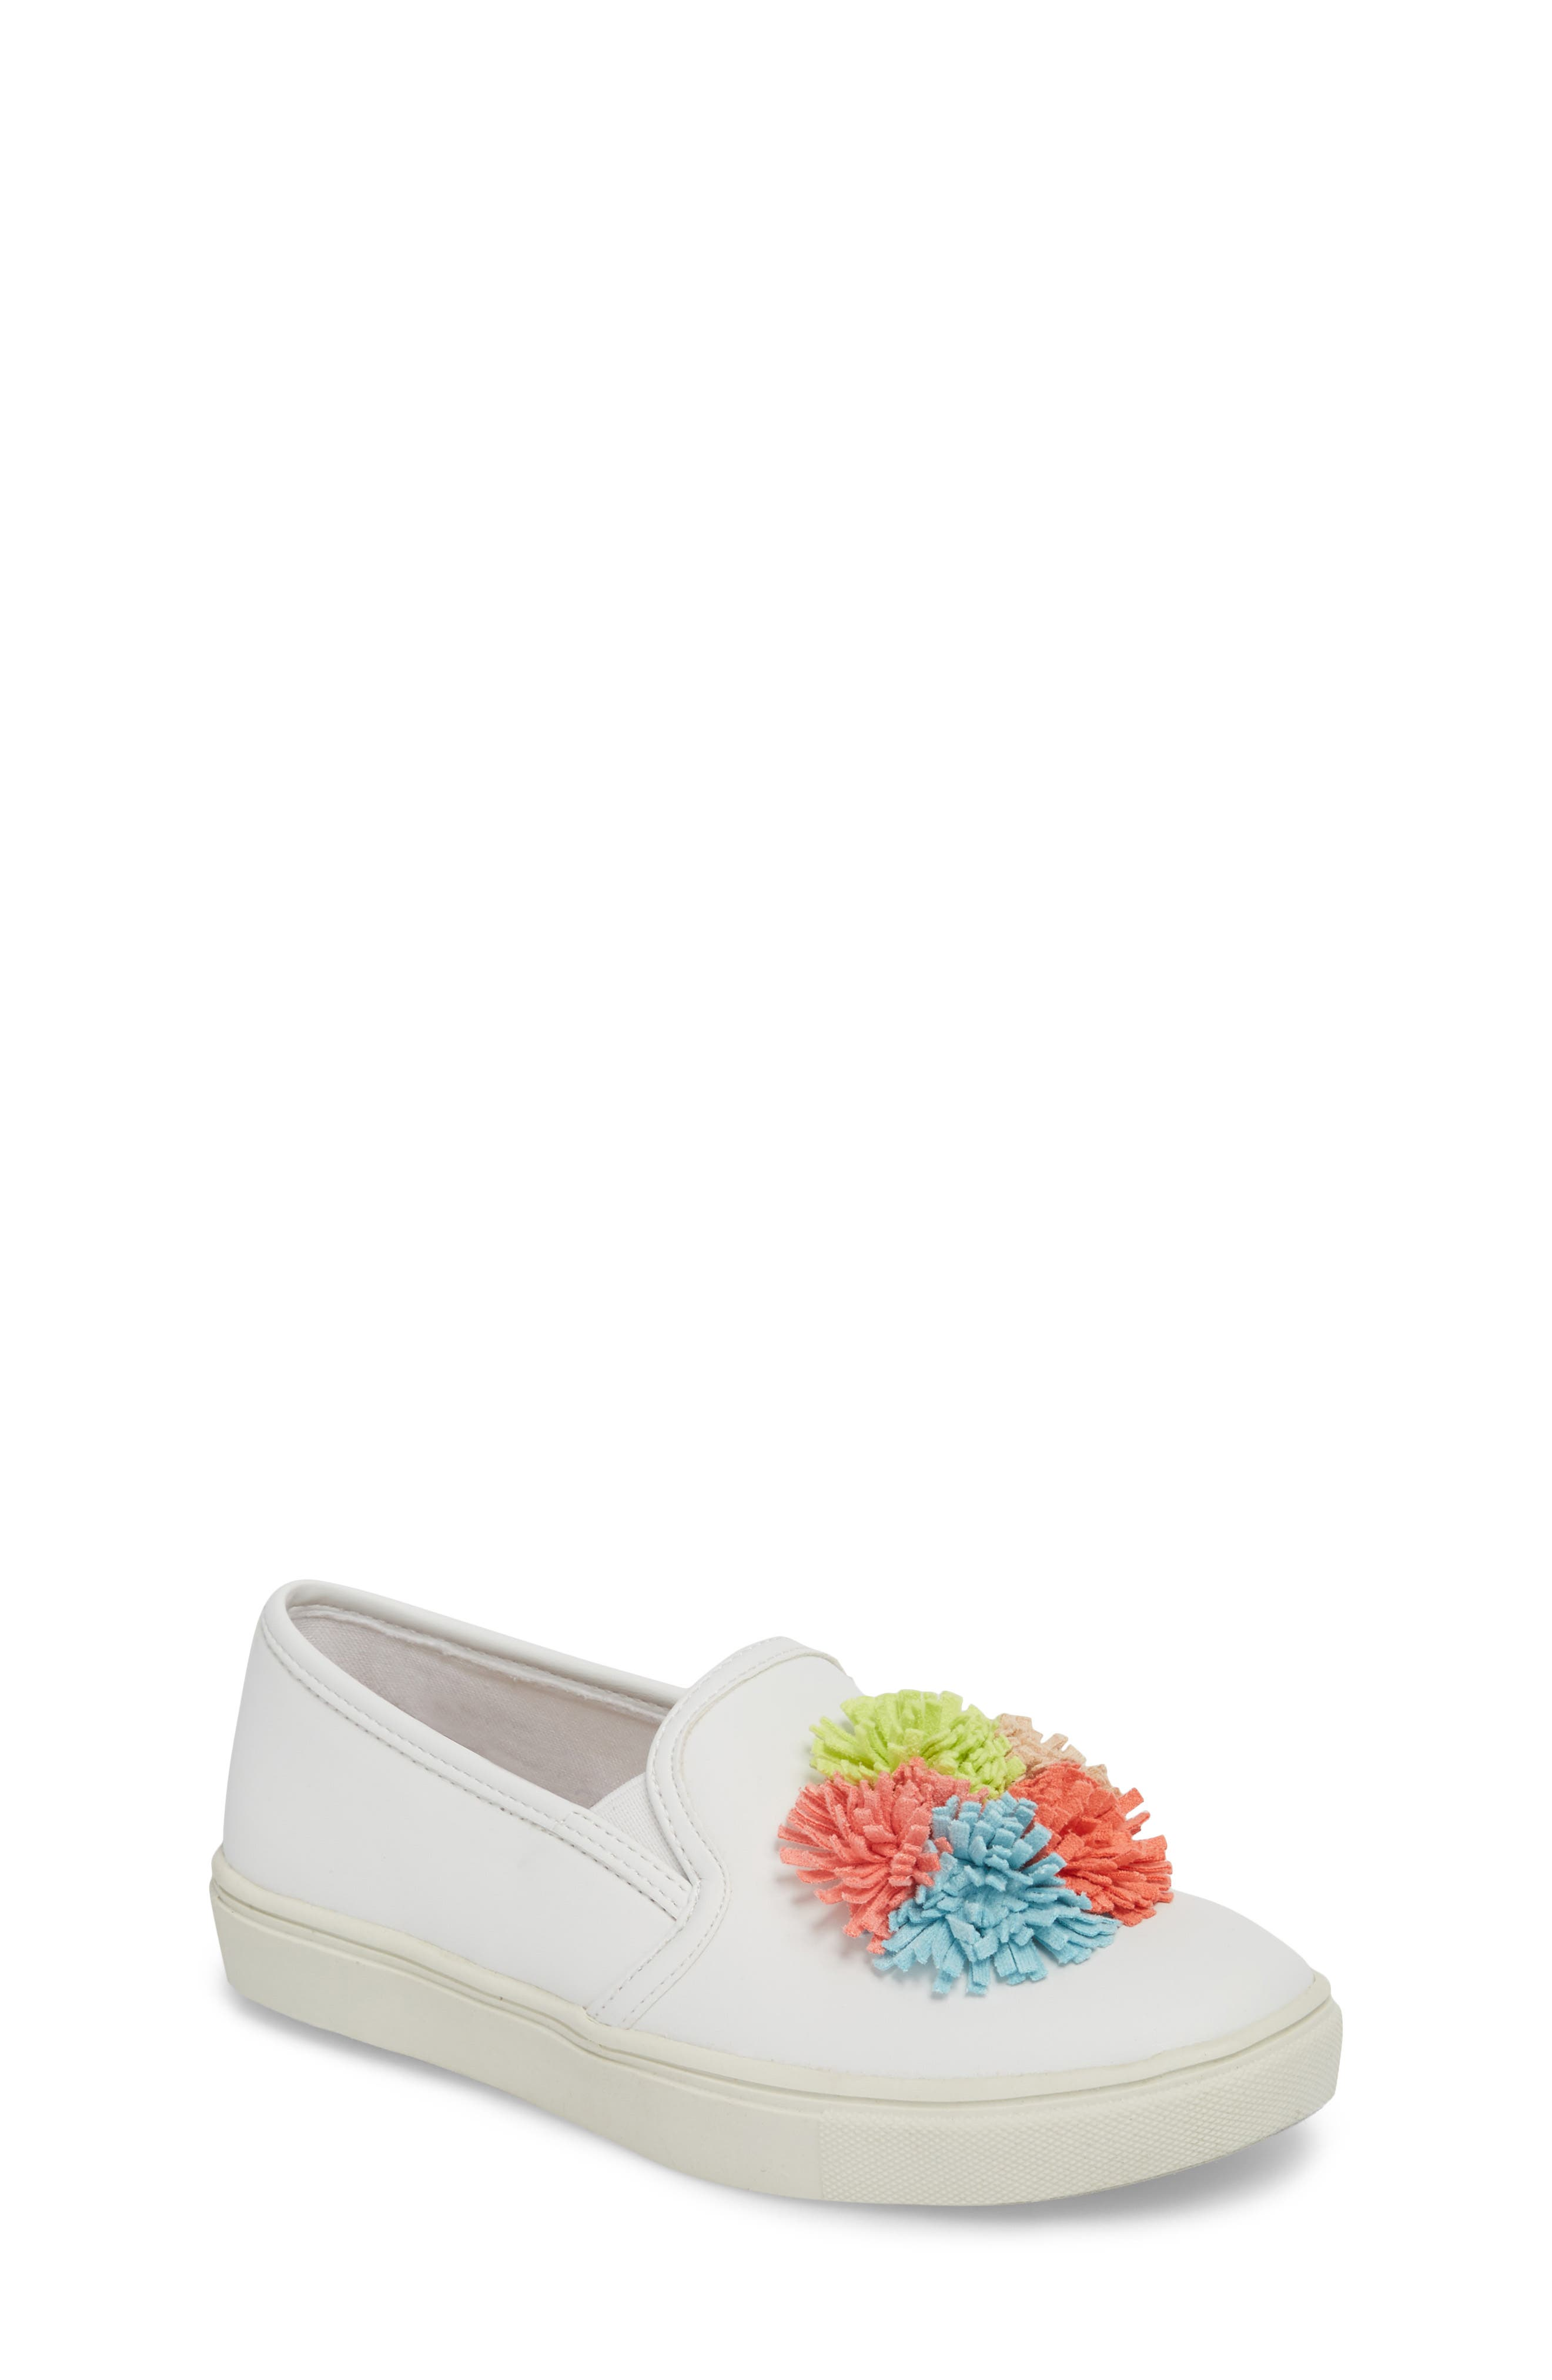 Tucker + Tate Twiny Pompom Slip-On Sneaker (Toddler, Little Kid & Big Kid)